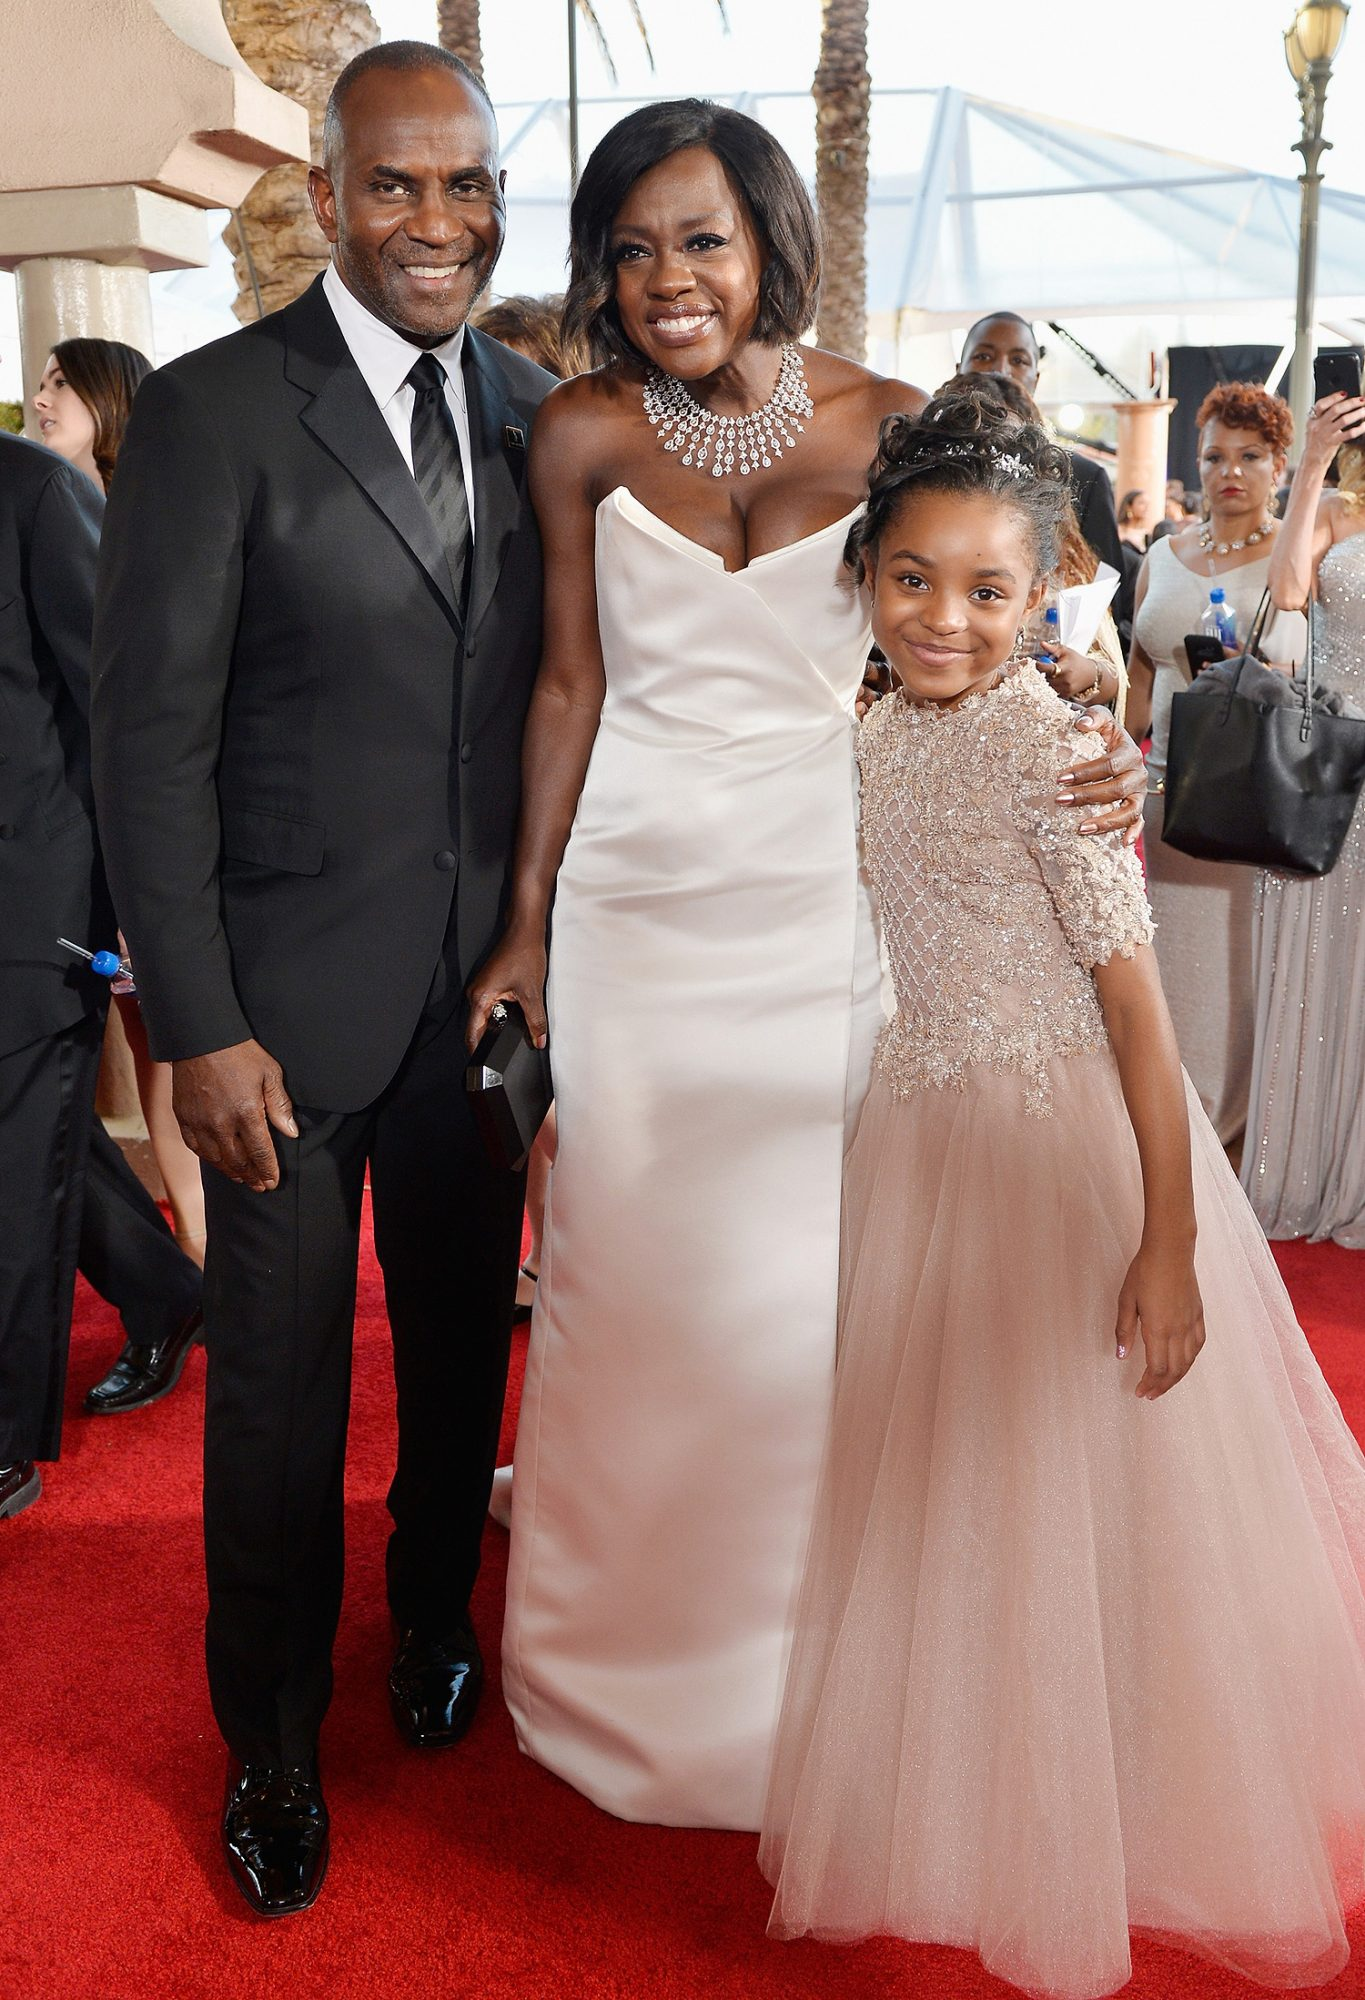 LOS ANGELES, CA - JANUARY 29: Actors Julius Tennon (L), Viola Davis and their daughter Genesis attend The 23rd Annual Screen Actors Guild Awards at The Shrine Auditorium on January 29, 2017 in Los Angeles, California. 26592_013 (Photo by Stefanie Keenan/Getty Images for TNT)